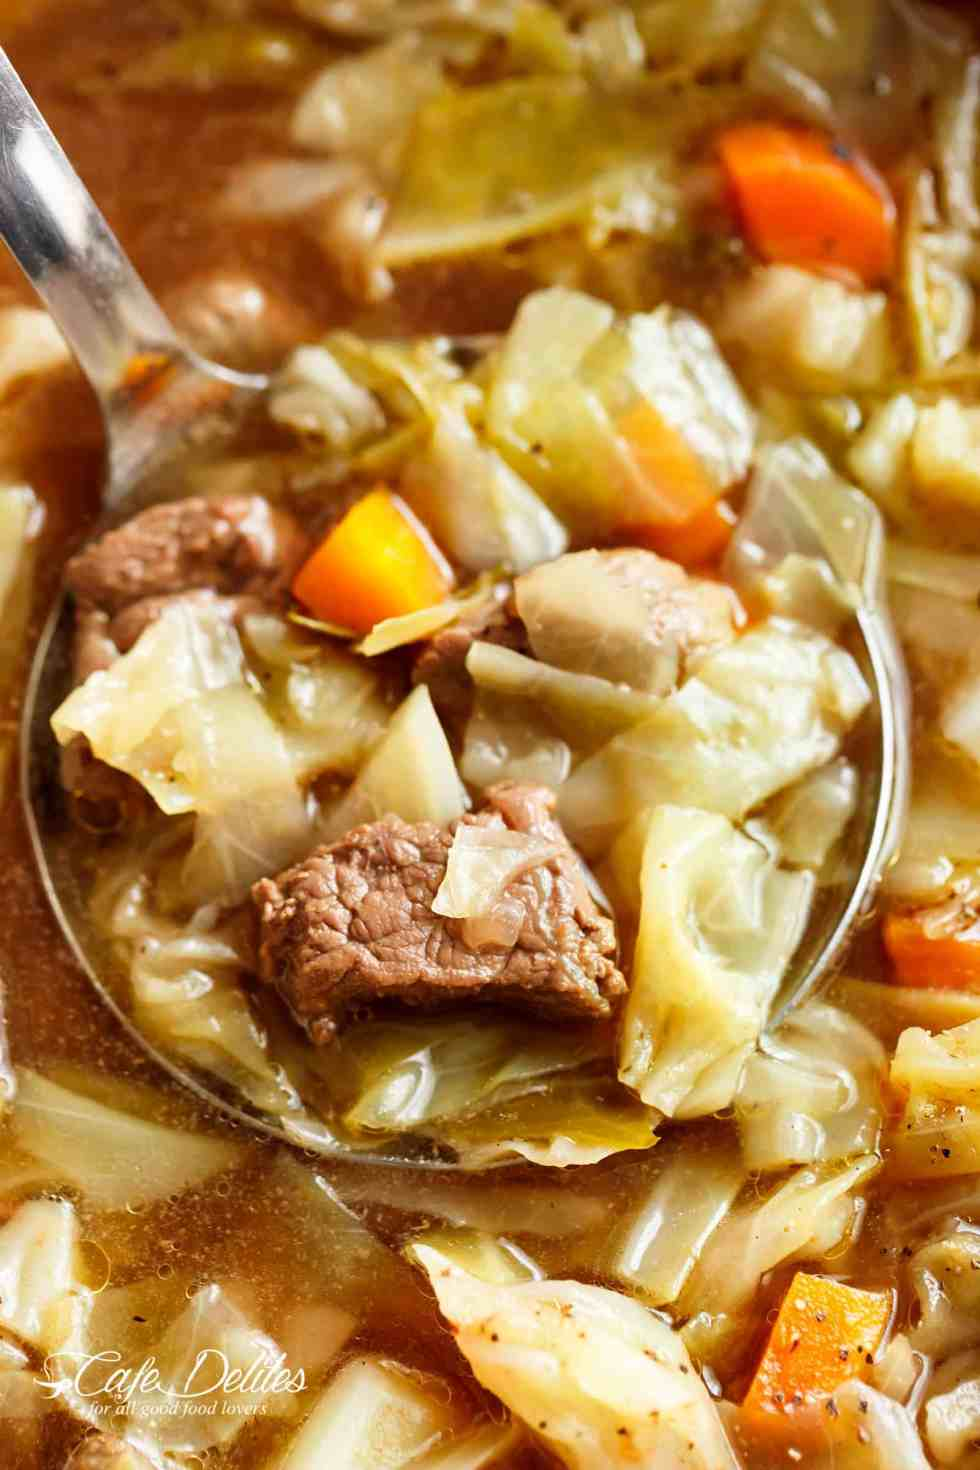 Beef Cabbage Soup is quick to make, healthy, low in carbs and full of delicious flavour! Made with minimal ingredients, full of cabbage, carrots, onions, garlic and tender, fall apart beef! | cafedelites.com